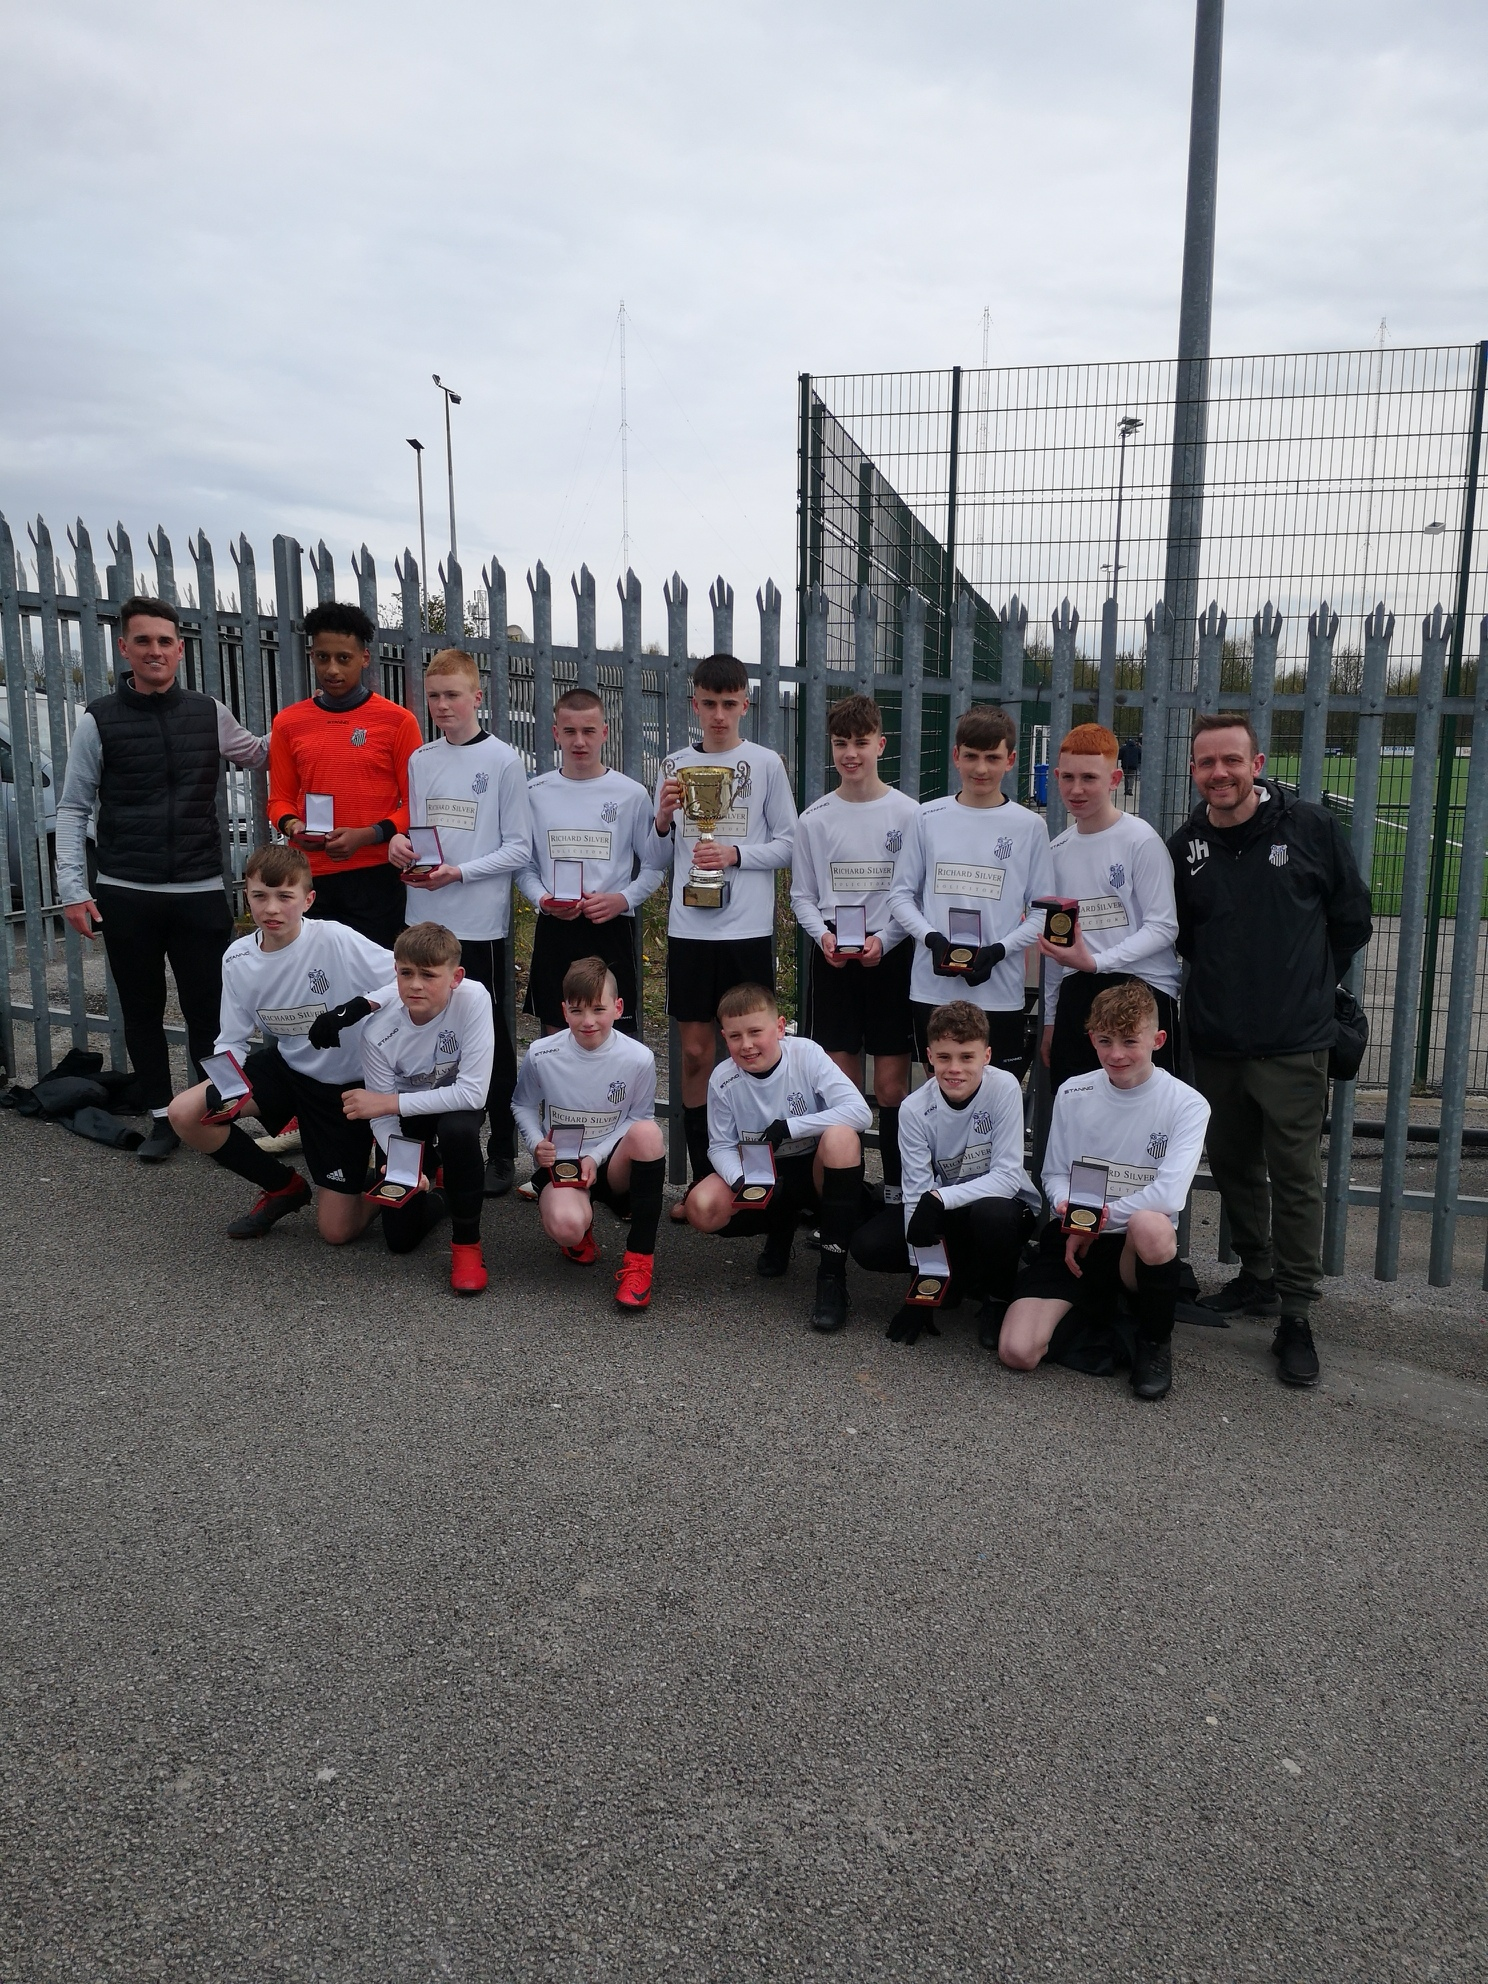 Trophy for Medlock Rangers U14s, sponsored by Richard Silver Solicitors.